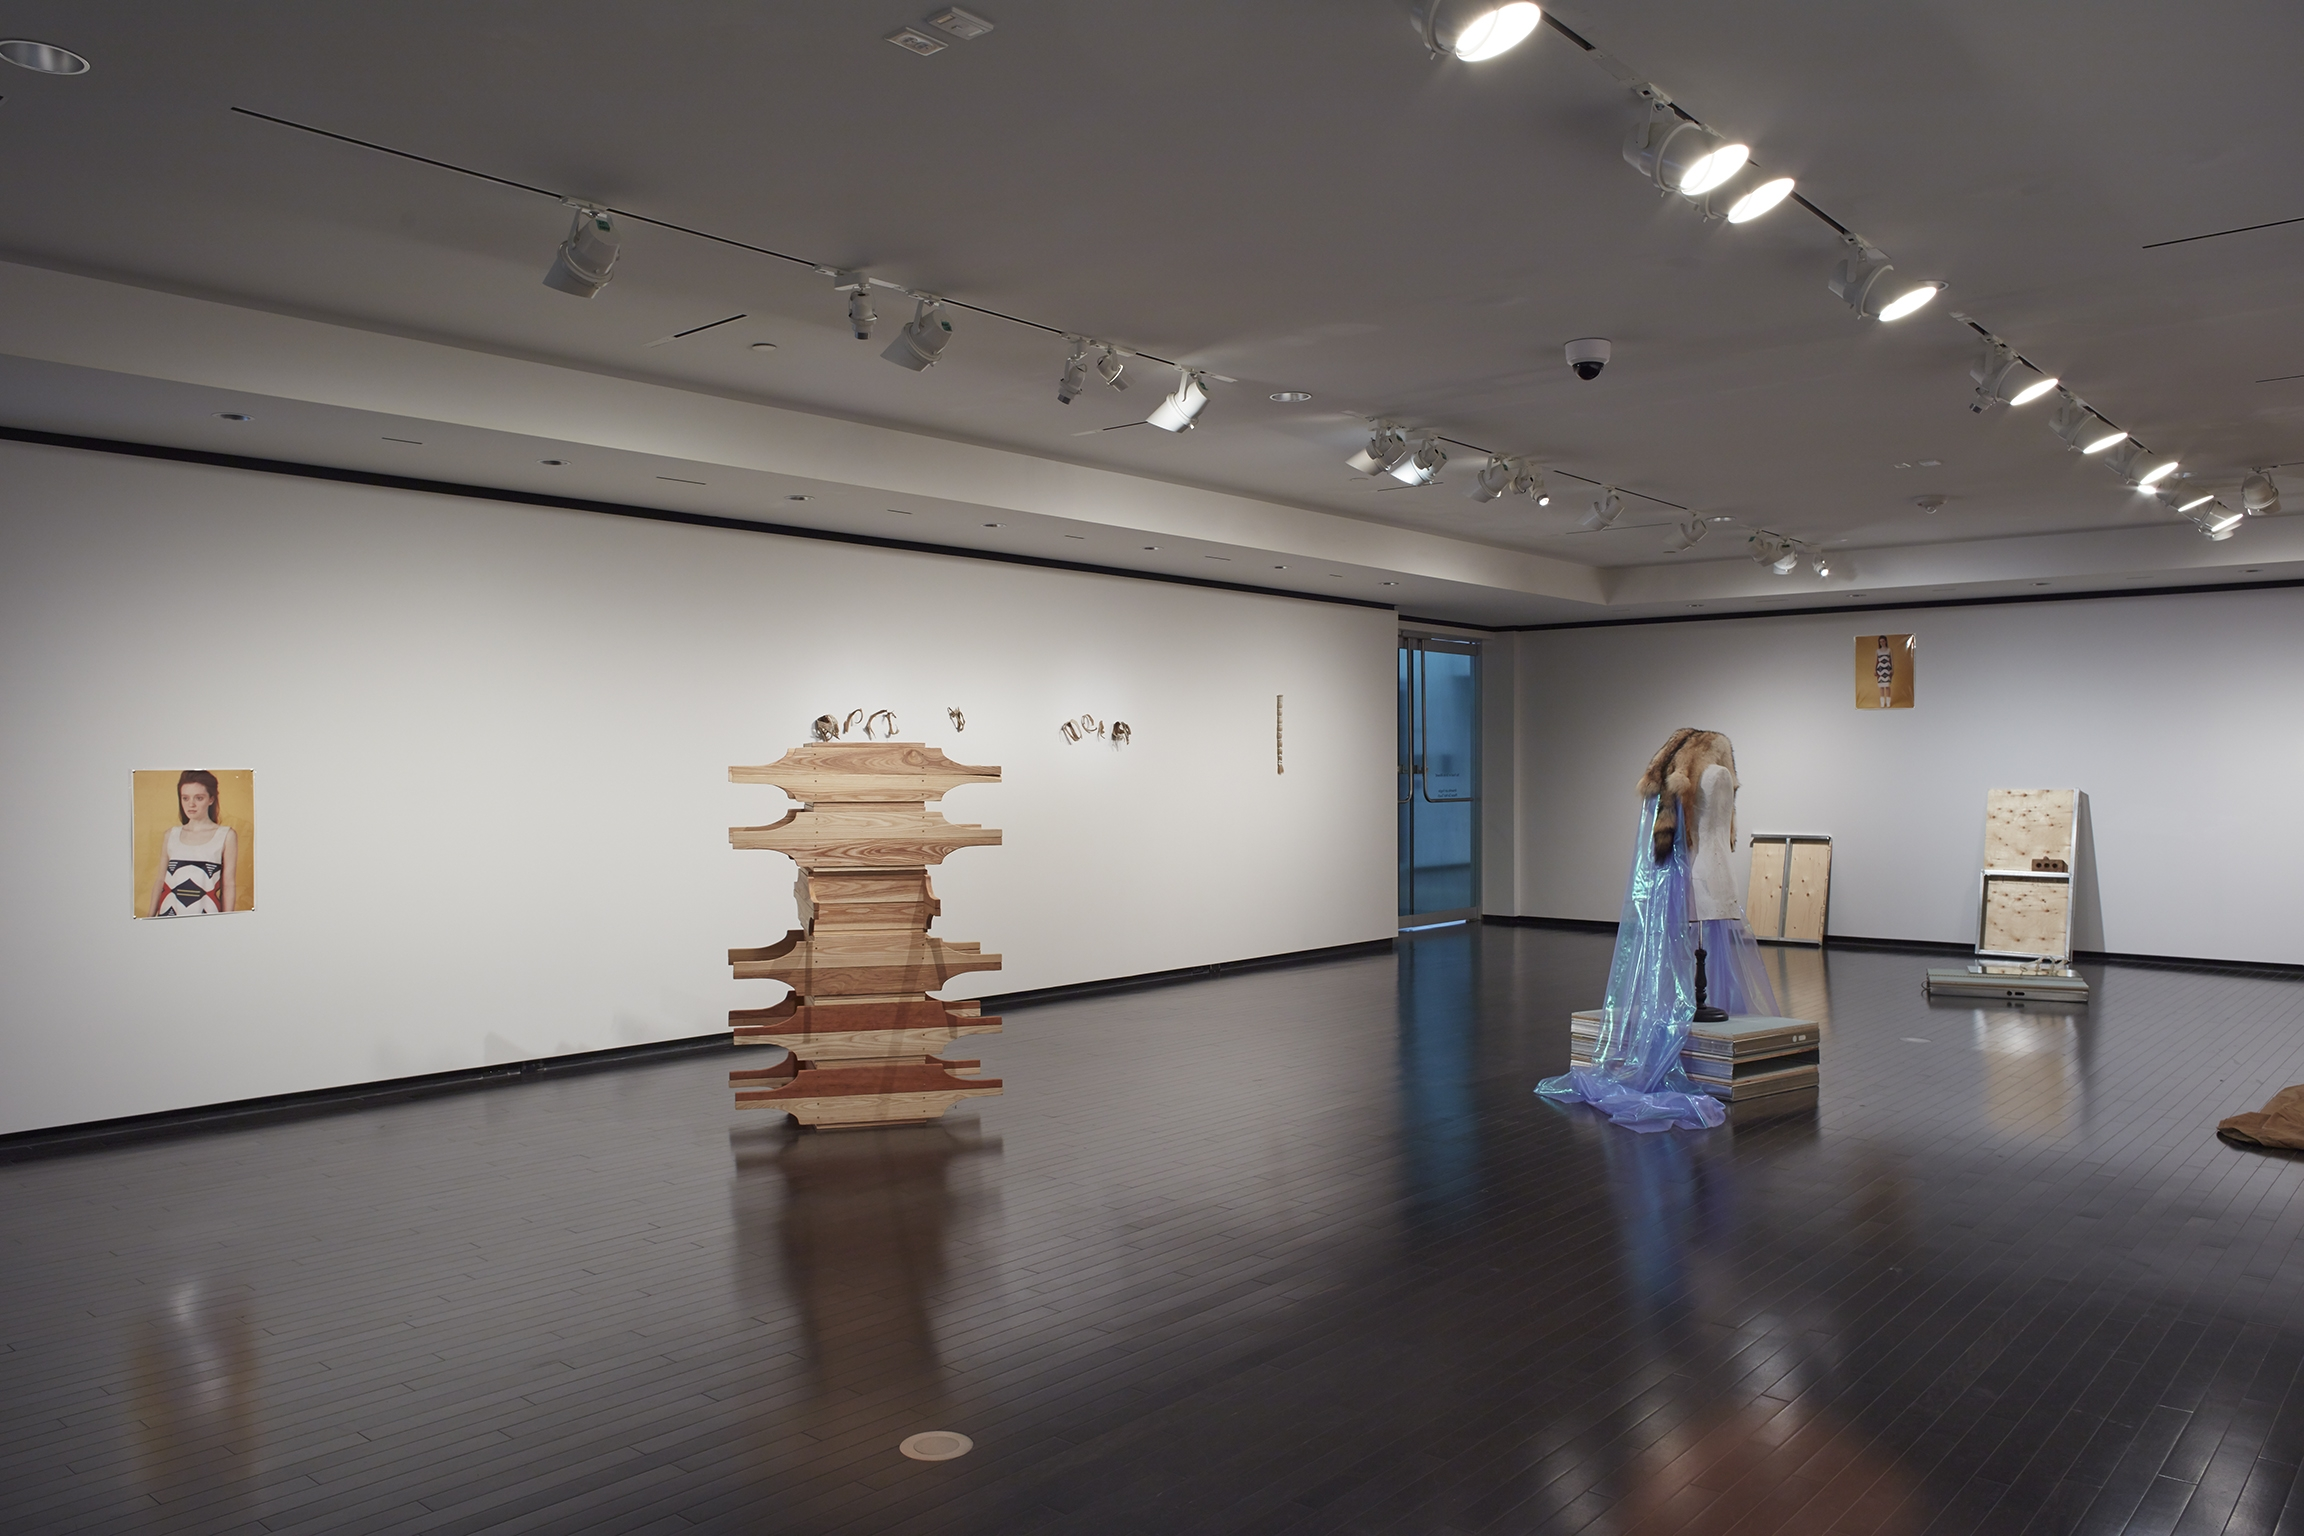 Duane Linklater, Tanya Lukin Linklater, installation view, A Parallel Excavation, Art Gallery of Alberta, Edmonton, Canada, 2016 by